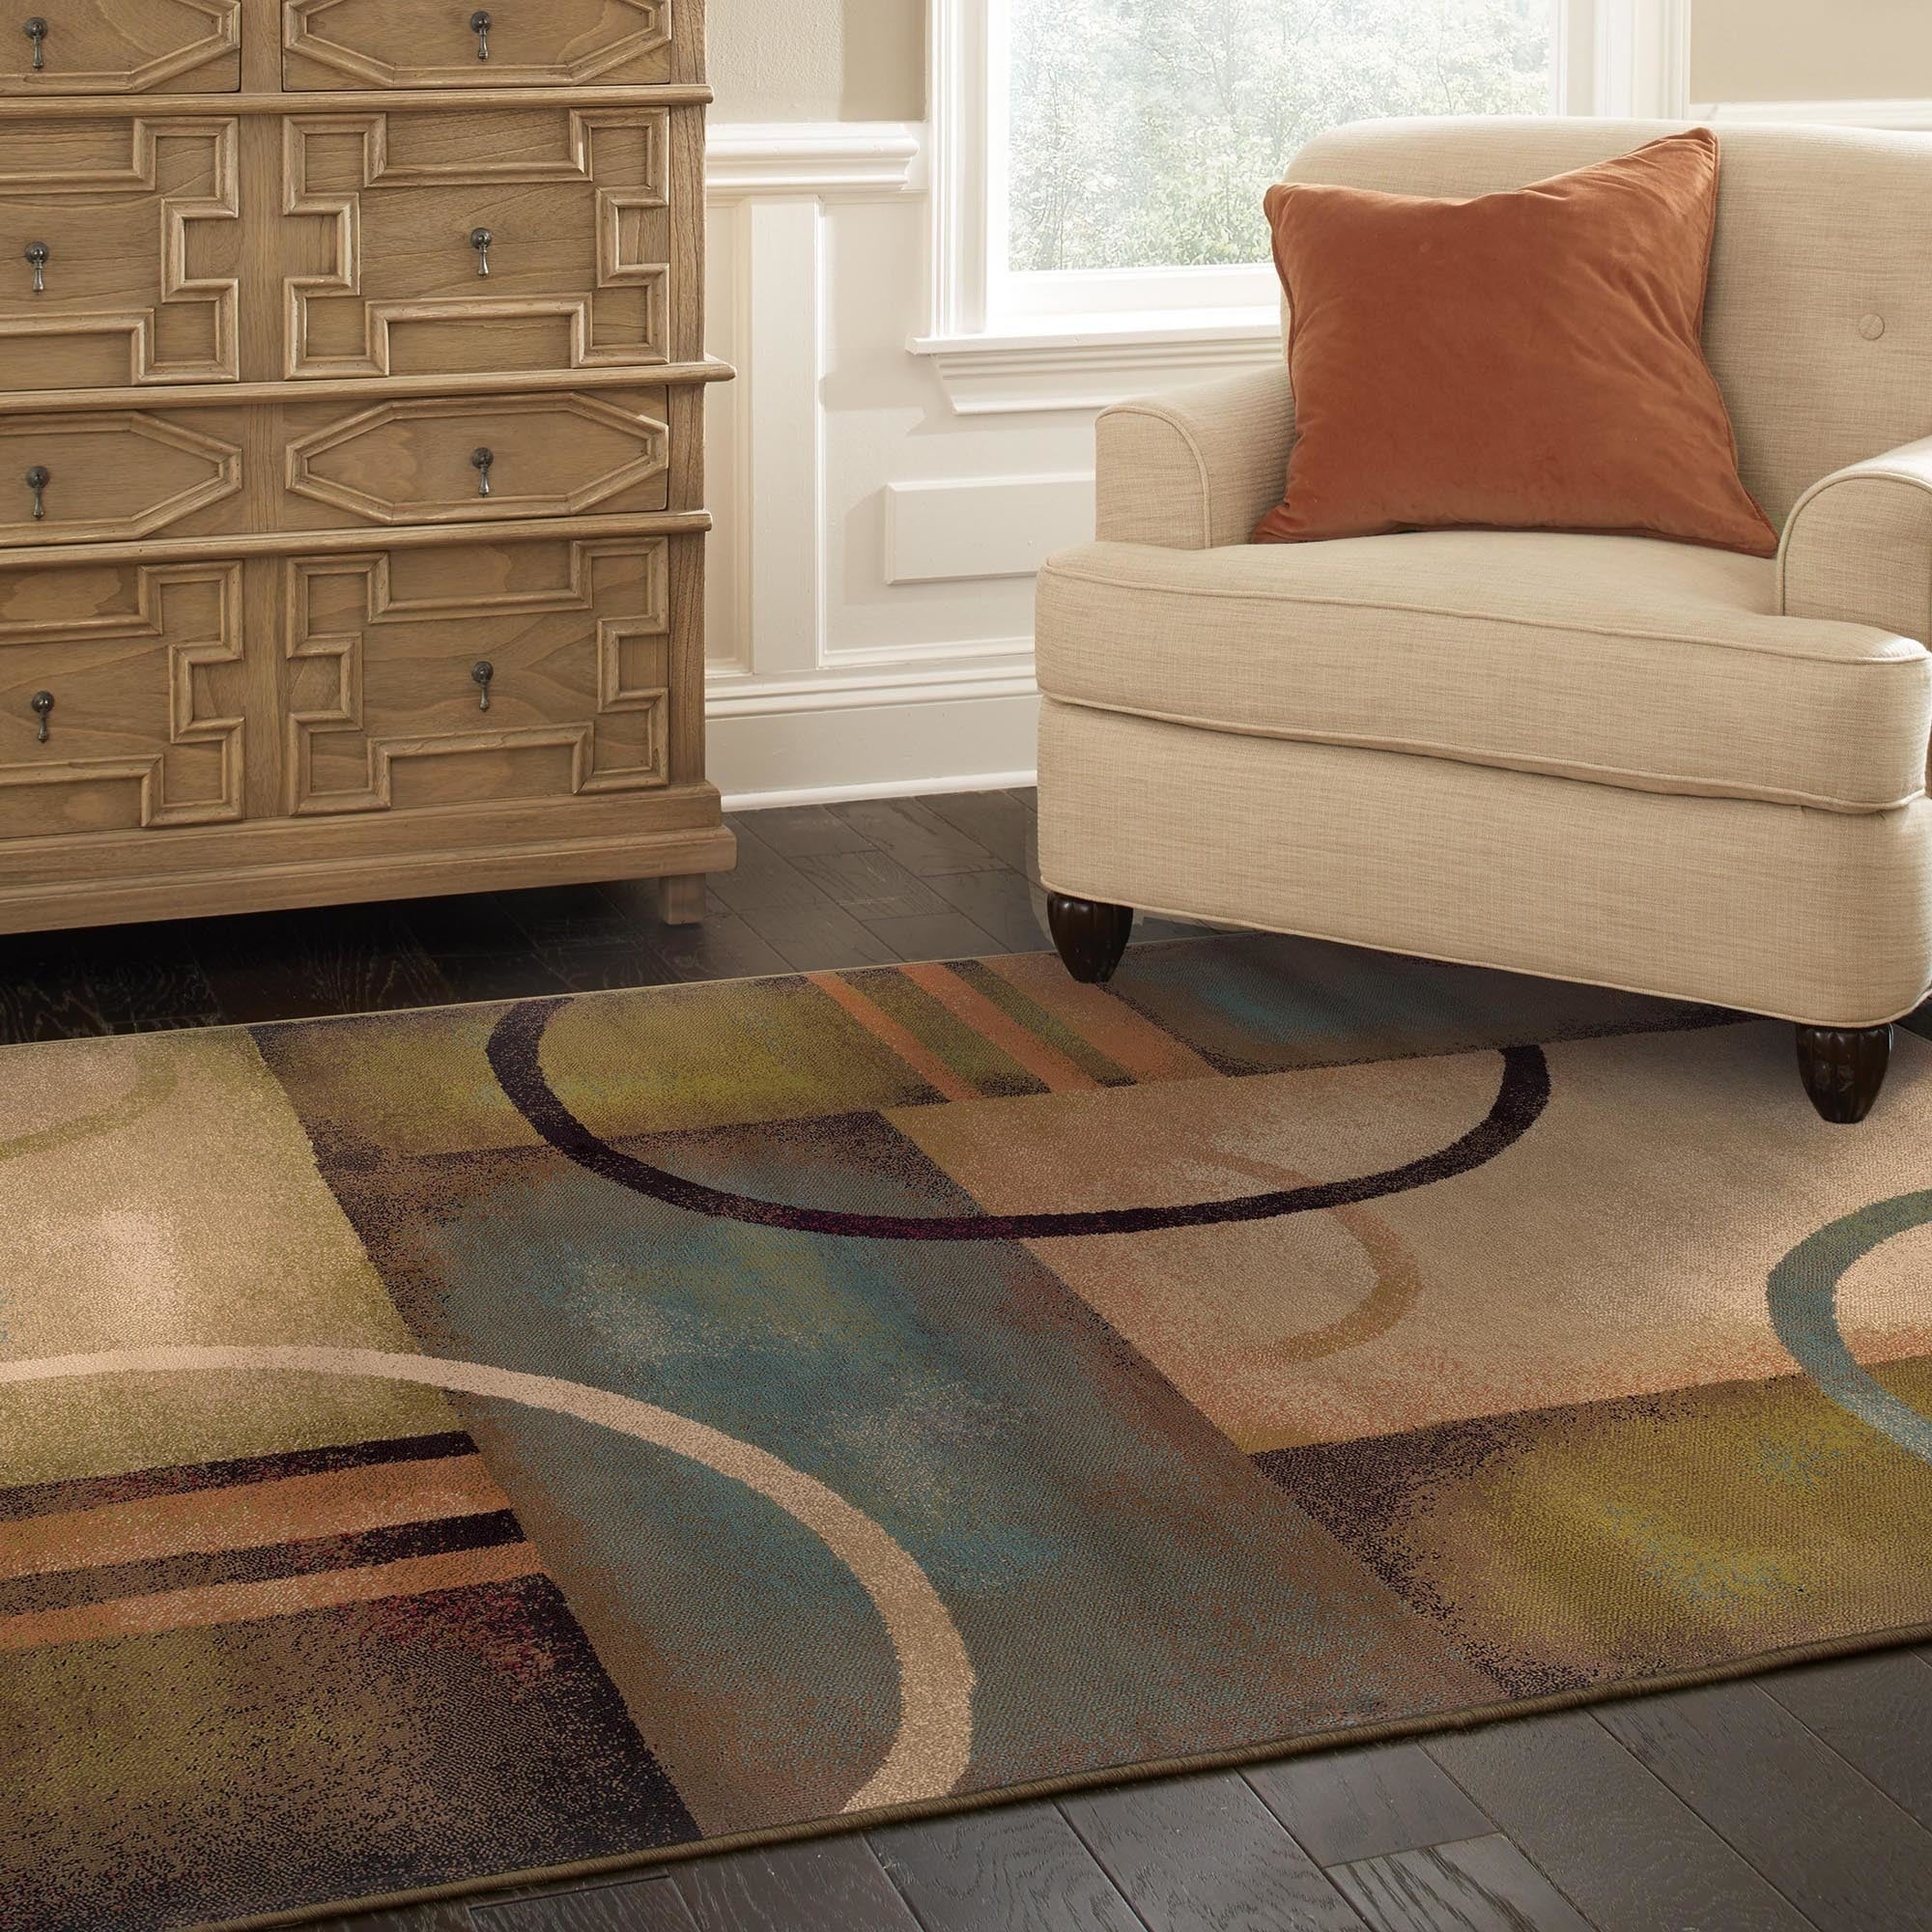 Indoor Beige Abstract Area Rug - 5' x 7'6""